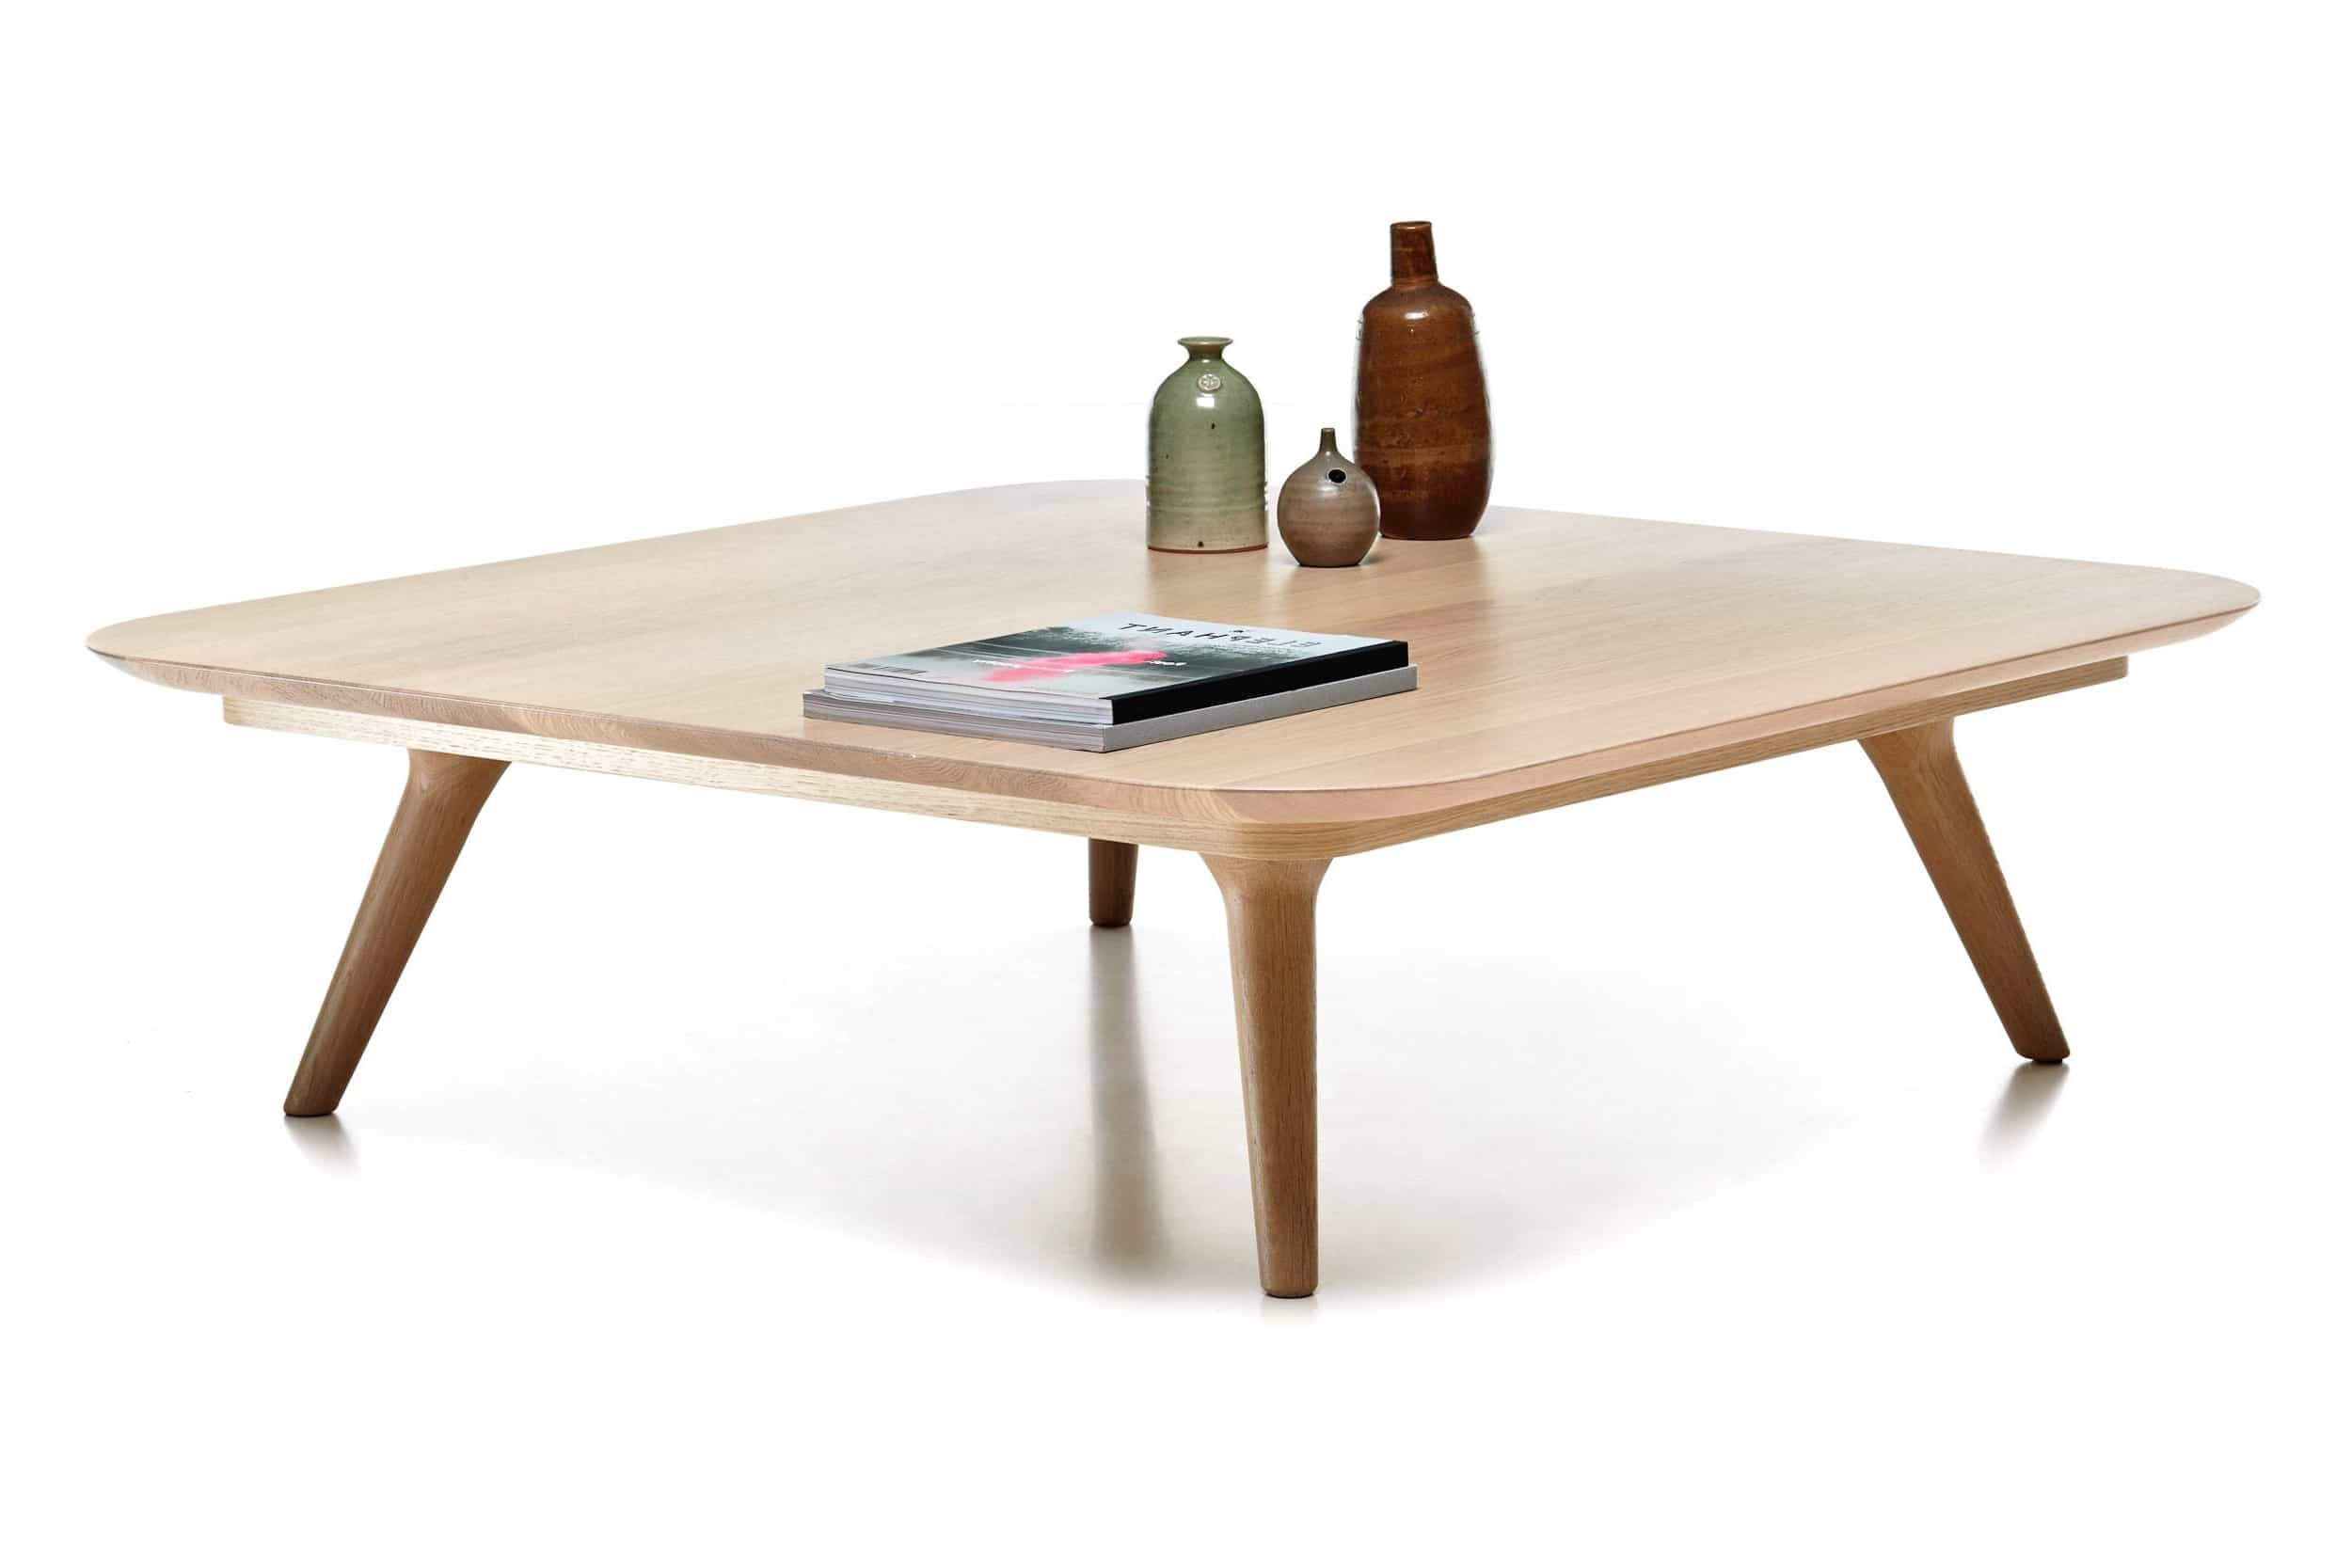 Minimalist Wooden Square Coffee Table Design (Image 16 of 30)